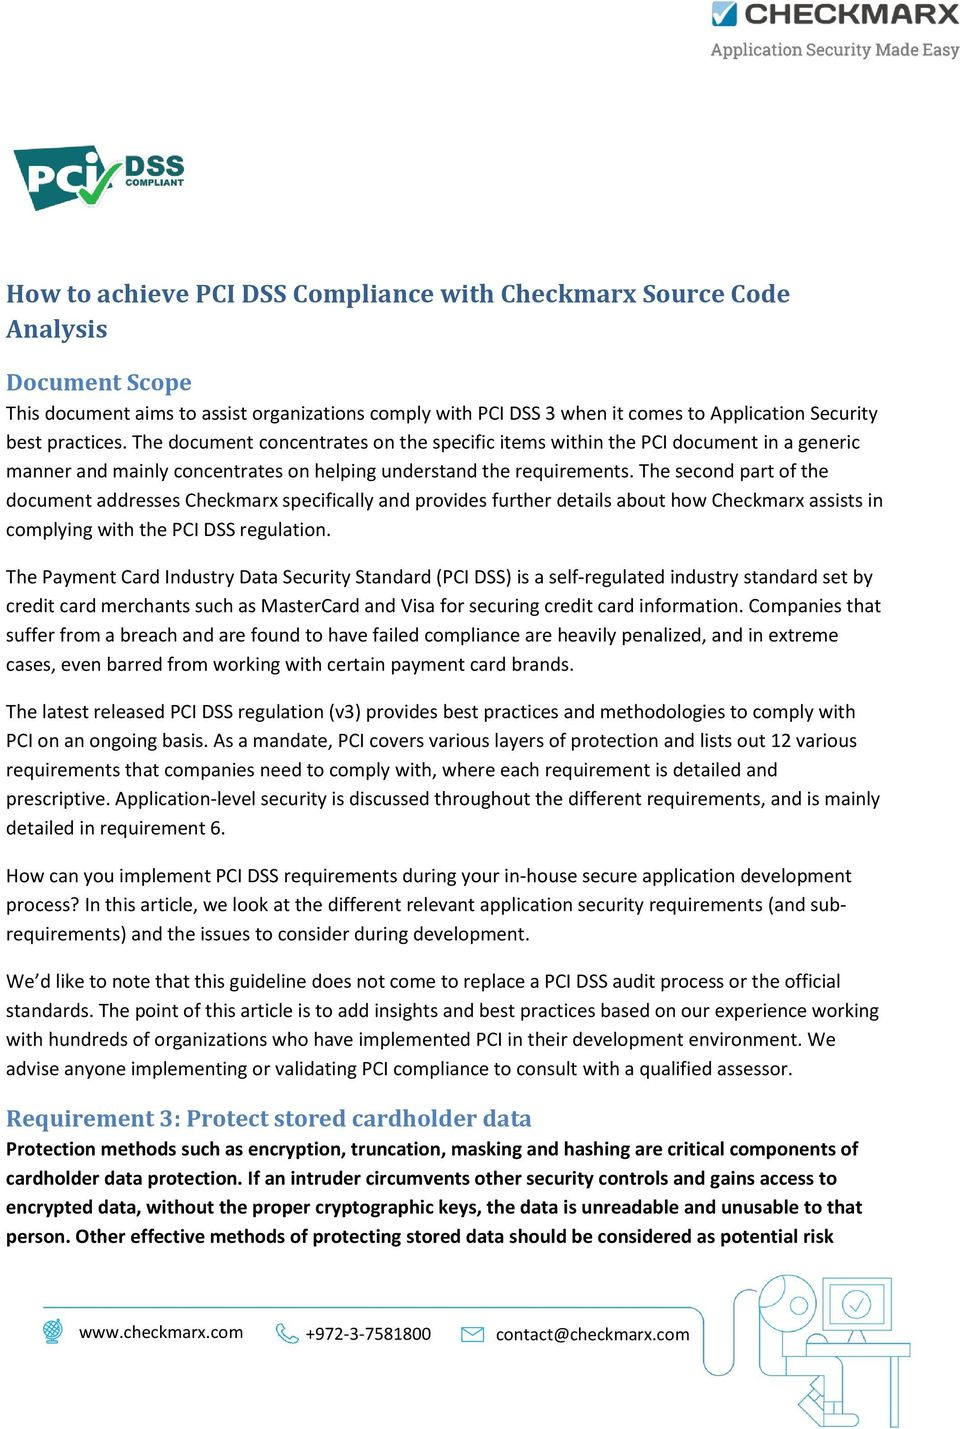 The second part of the document addresses Checkmarx specifically and provides further details about how Checkmarx assists in complying with the PCI DSS regulation.